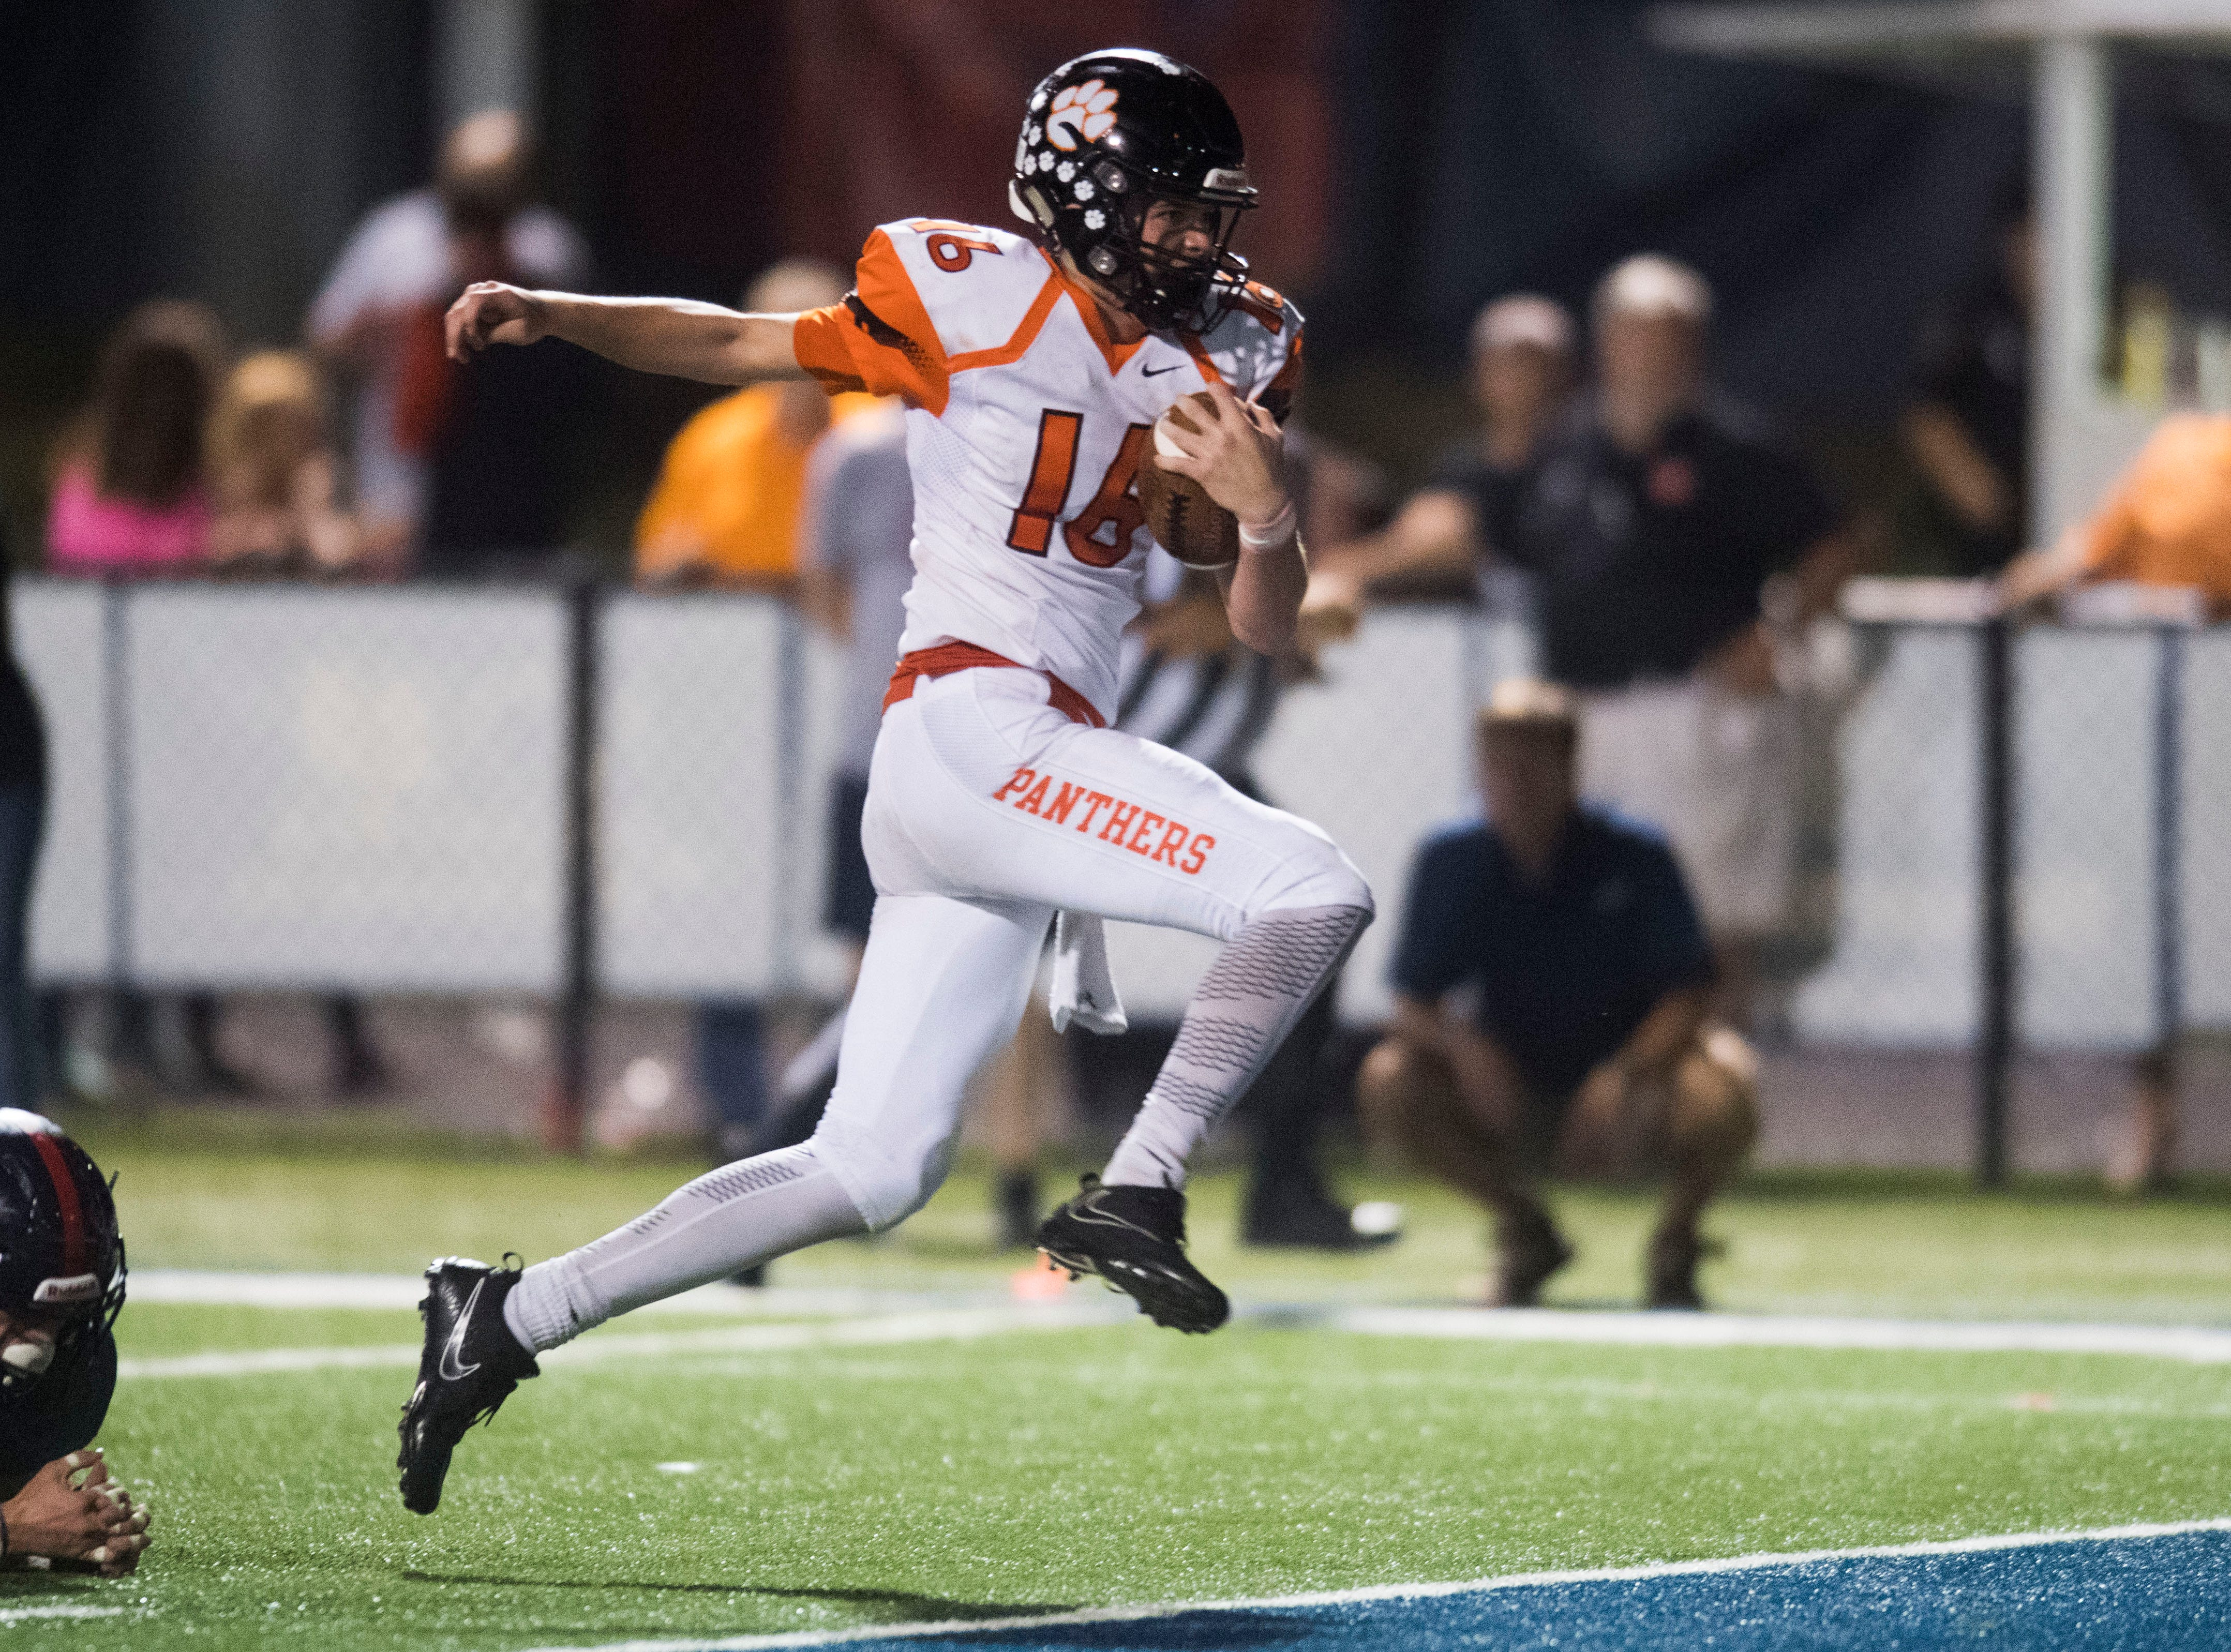 Powell's Walker Trusley (16) runs into the end zone for a touchdown during a game between West and Powell at West, Friday, Oct. 5, 2018. Powell defeated West 36-21.